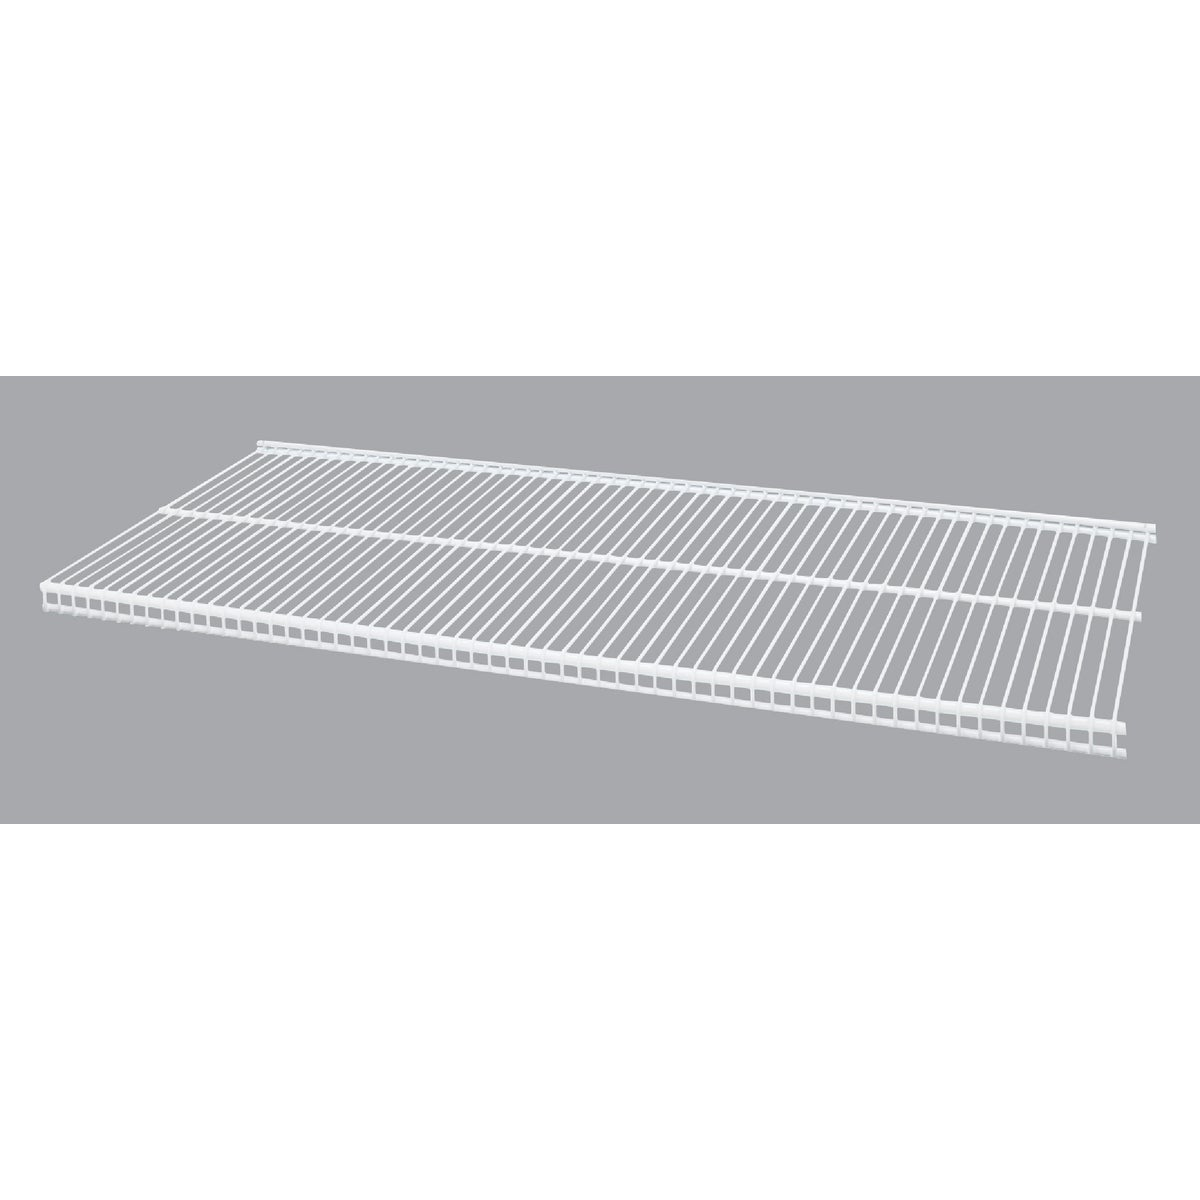 "12X36"" WH PROFILE SHELF - 1813123611 by Schulte Corp"